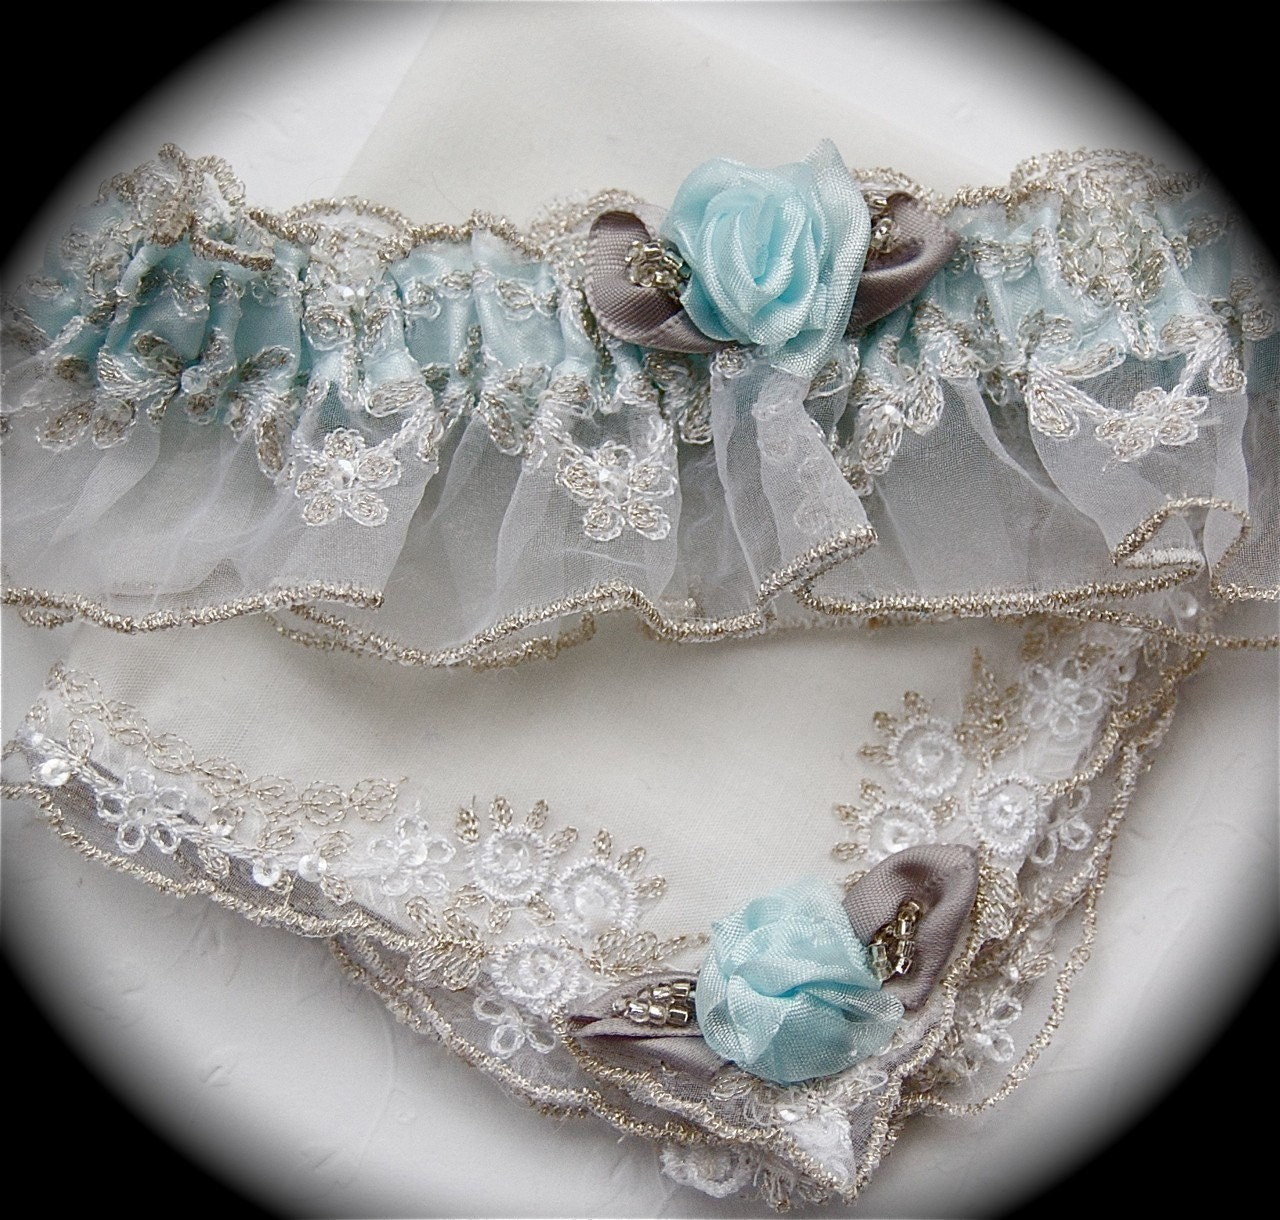 Elegant in Tiffany Blue GarterLady's Most Regal Romantic Wedding Lace Garter Hanky Set